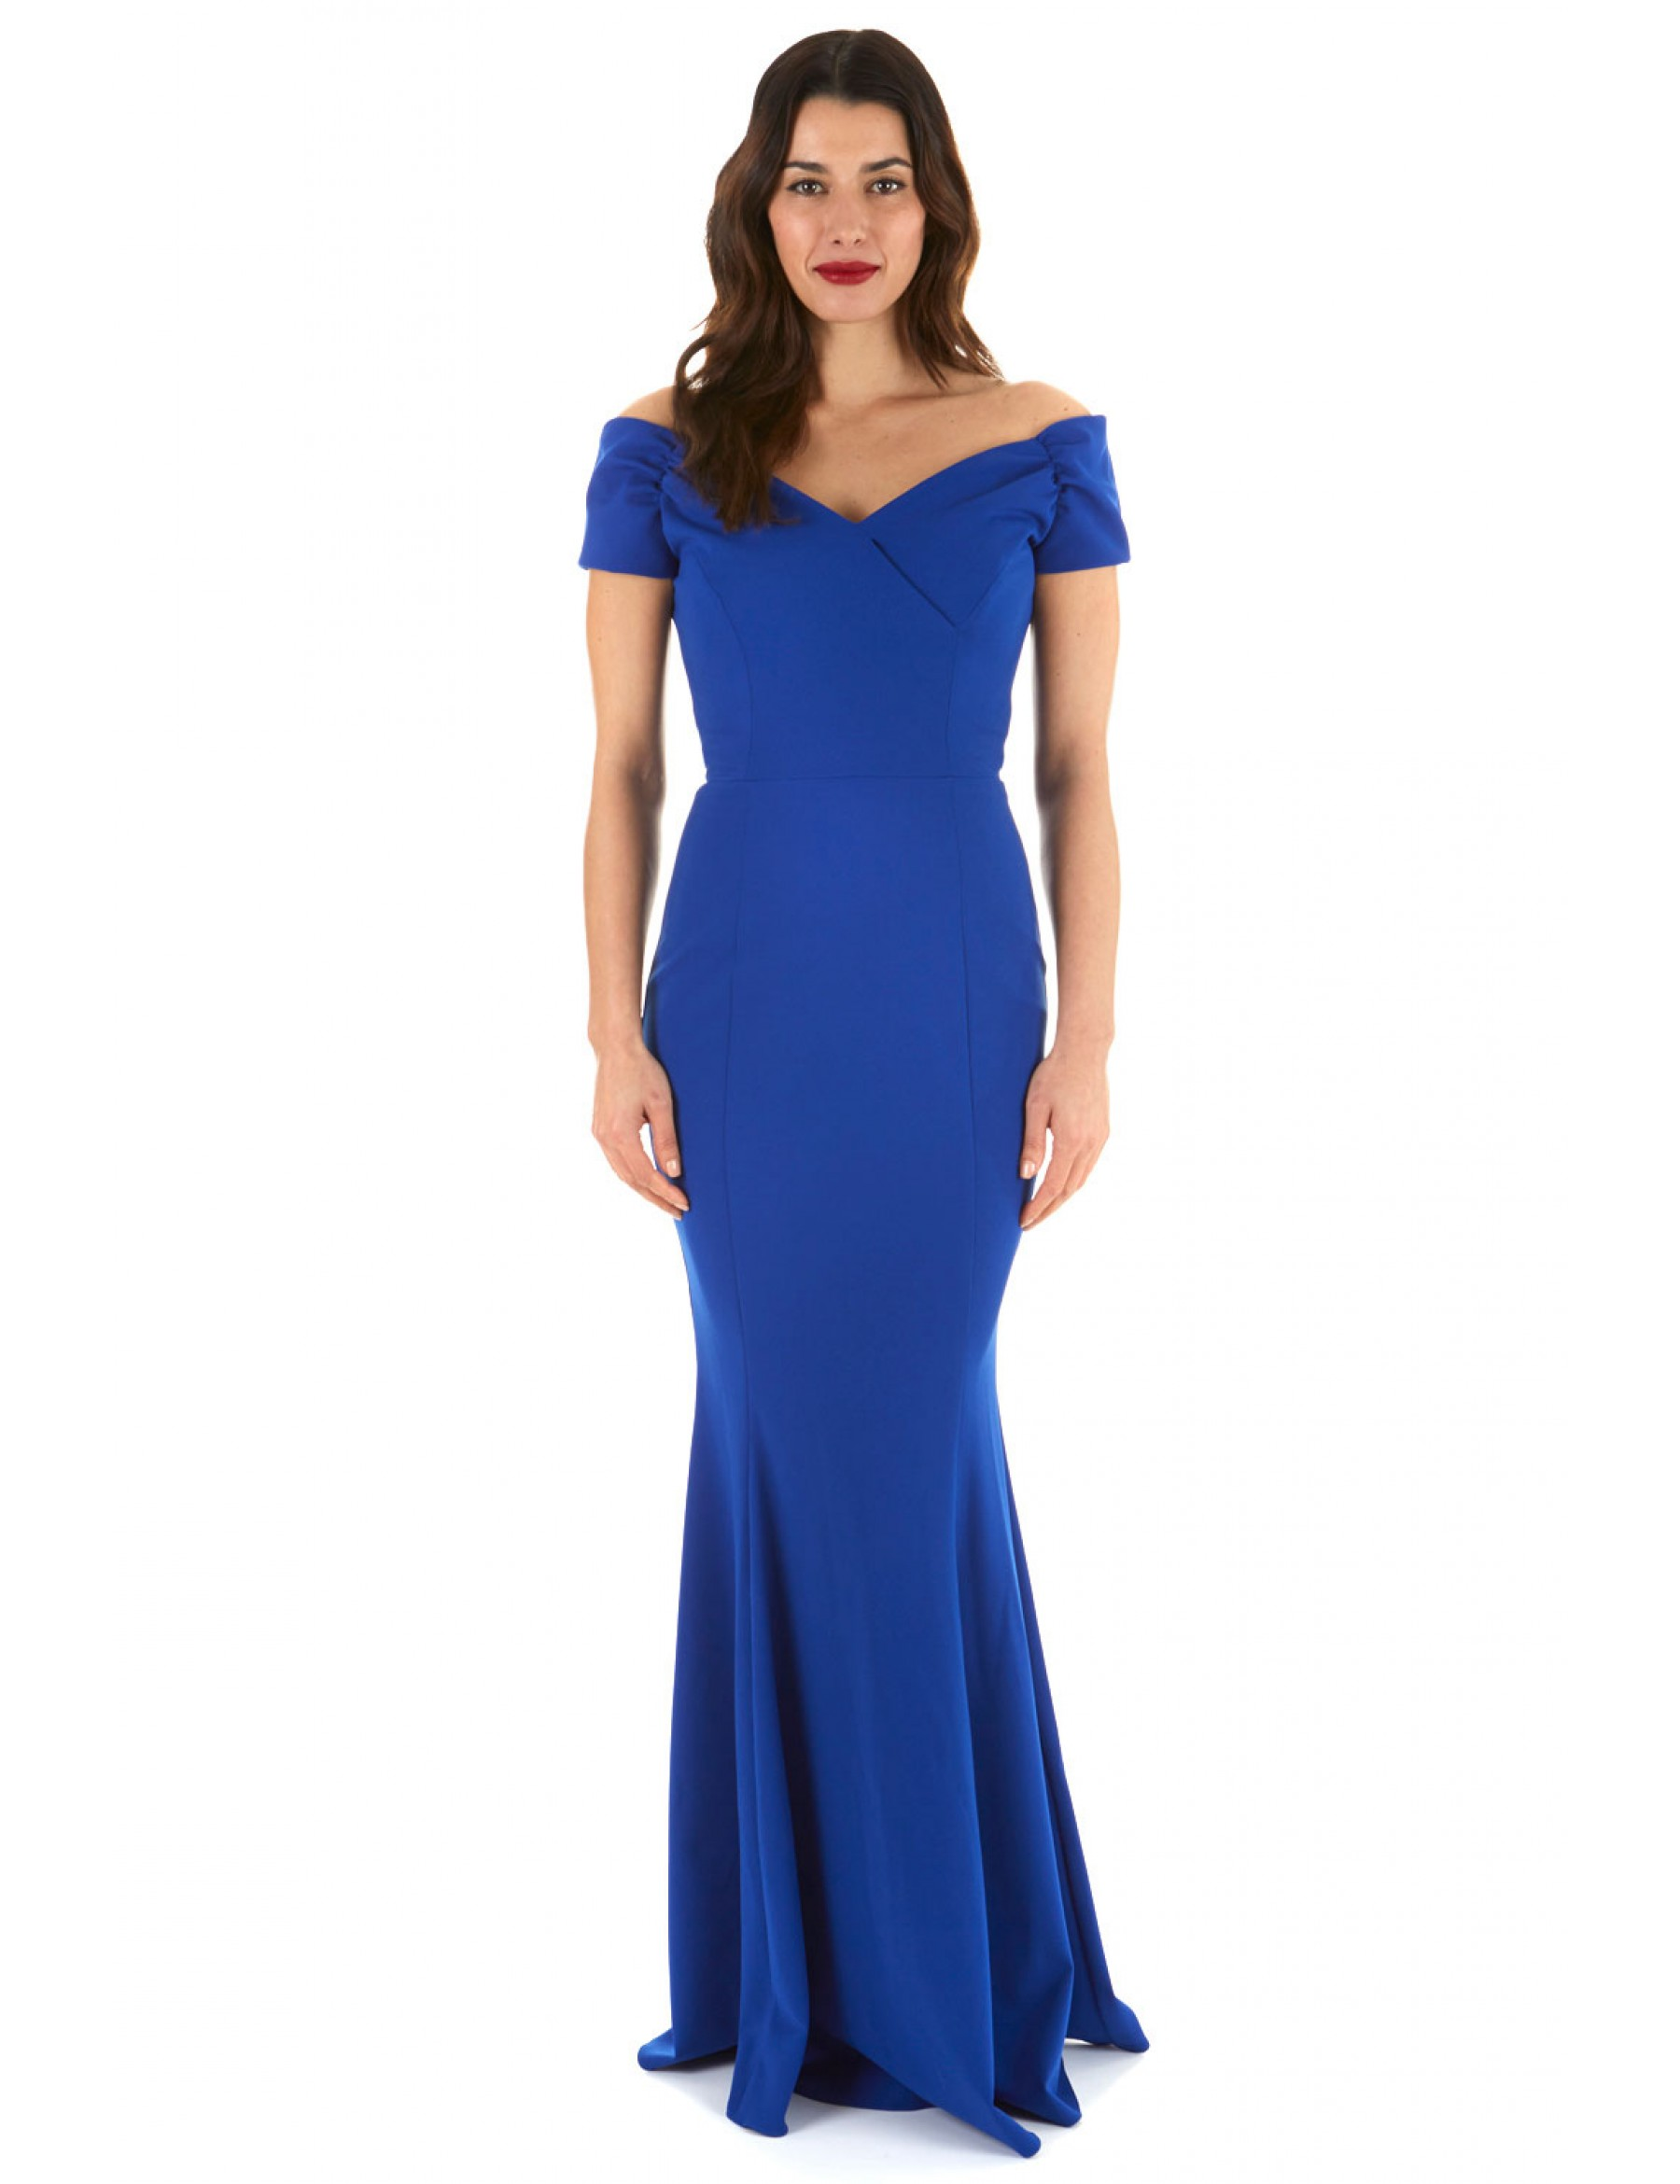 Off The Shoulder Fishtail Evening Dress